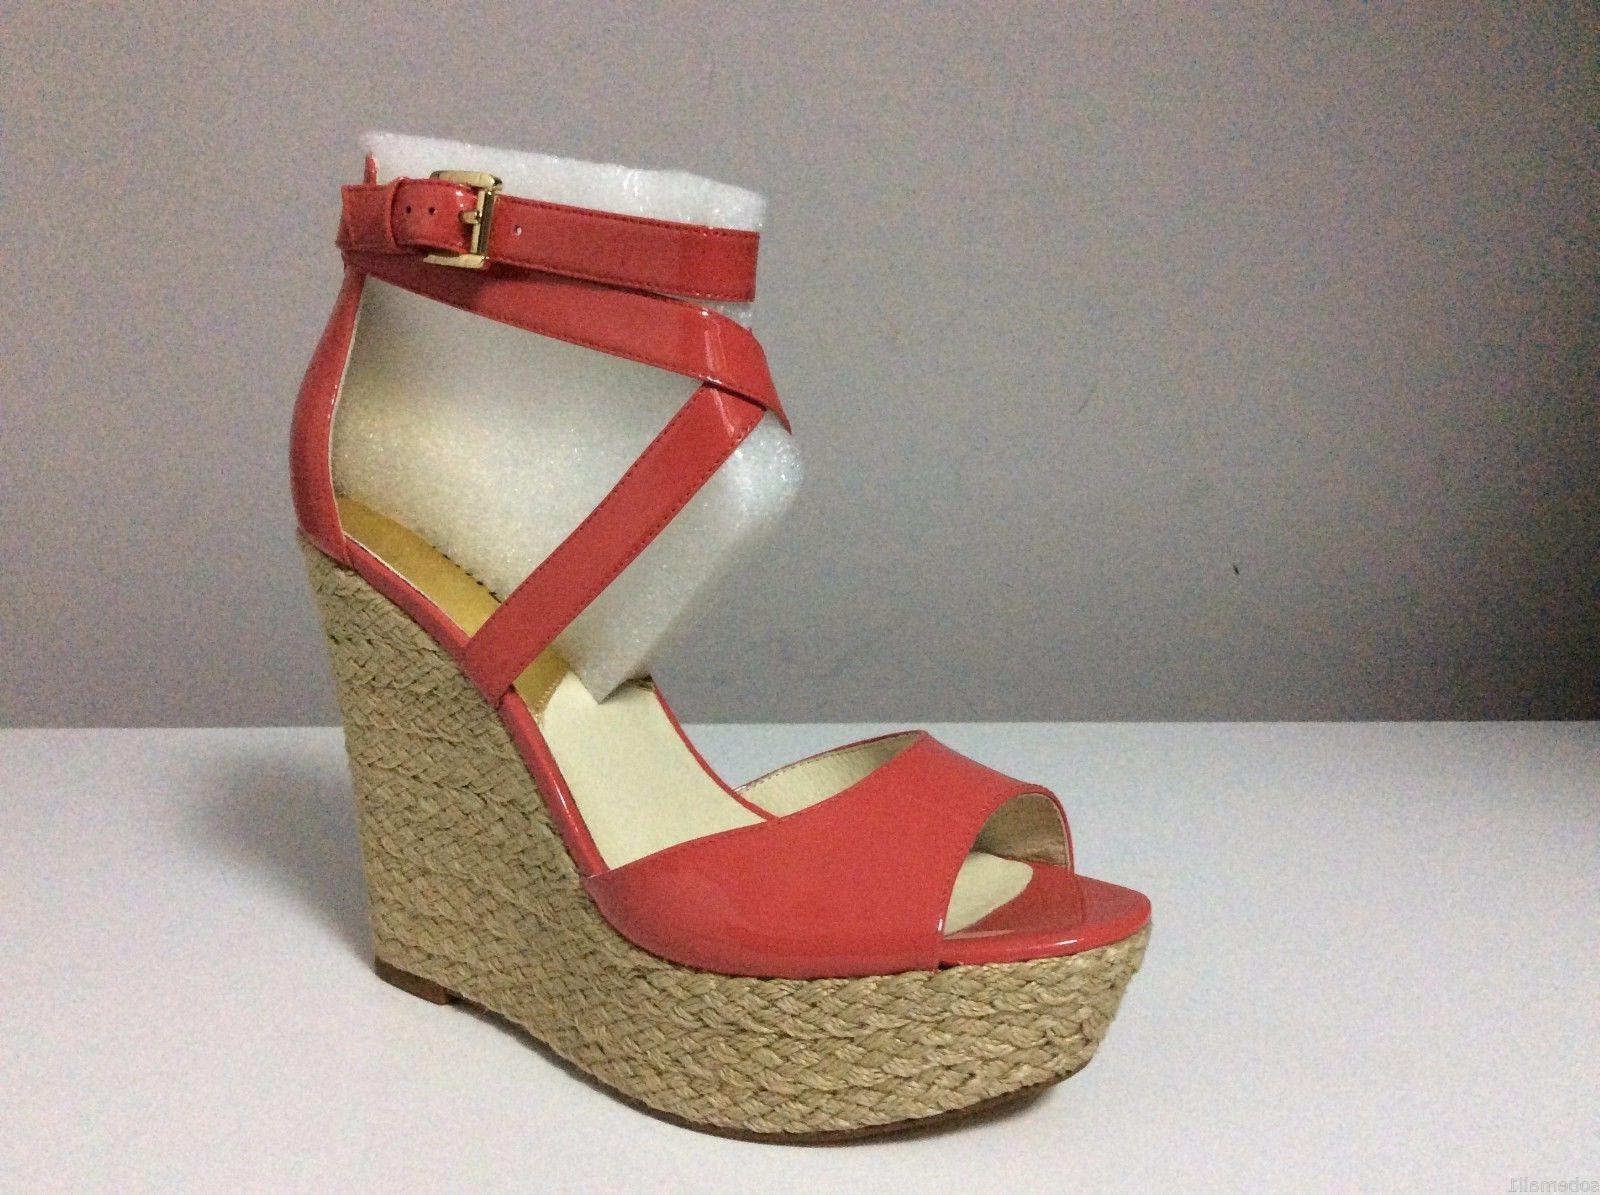 MICHAEL Kors Patent Leather Wedge Sandals 10